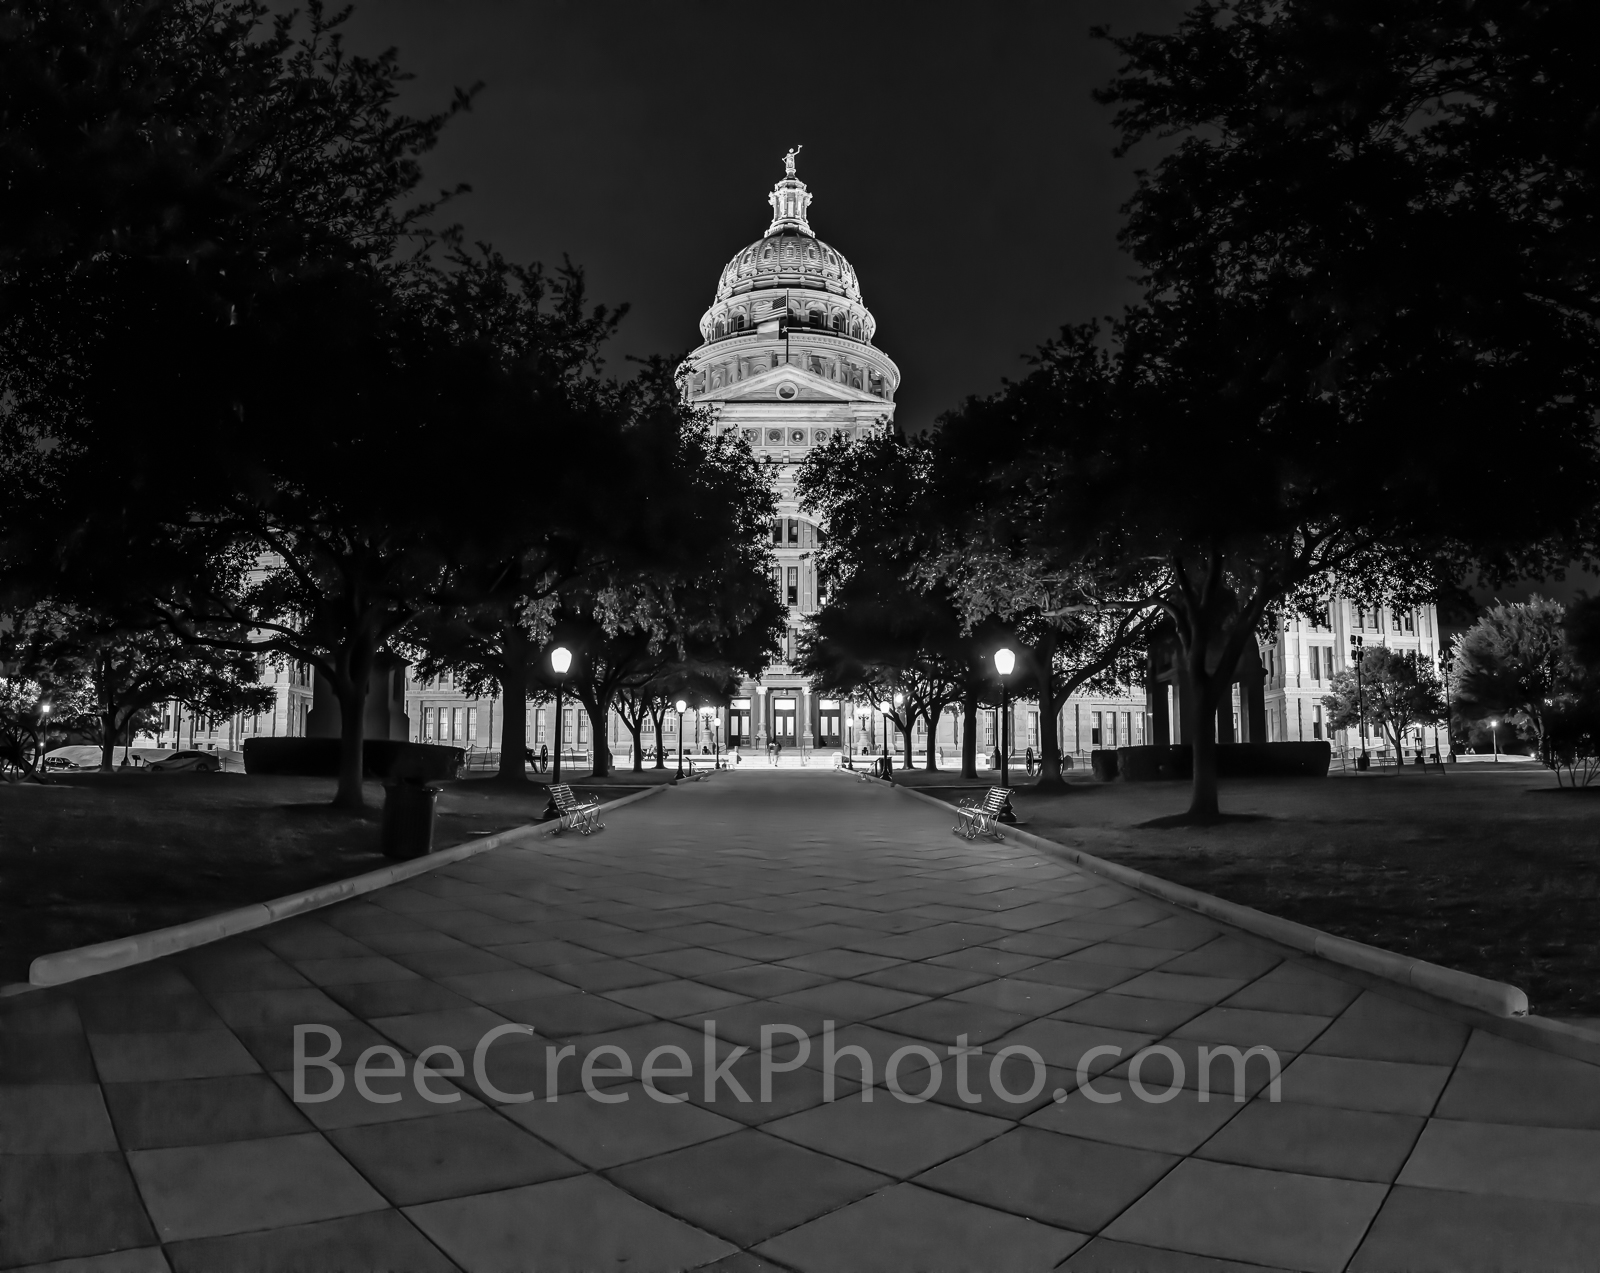 Austin, Texas Capitol, night, bw, black and white, downtown, vertical panorama,  pano, city, tourist, landmark, historic, history, State Capitol building, State Capitol of Texas, state Capitol, Capito, photo